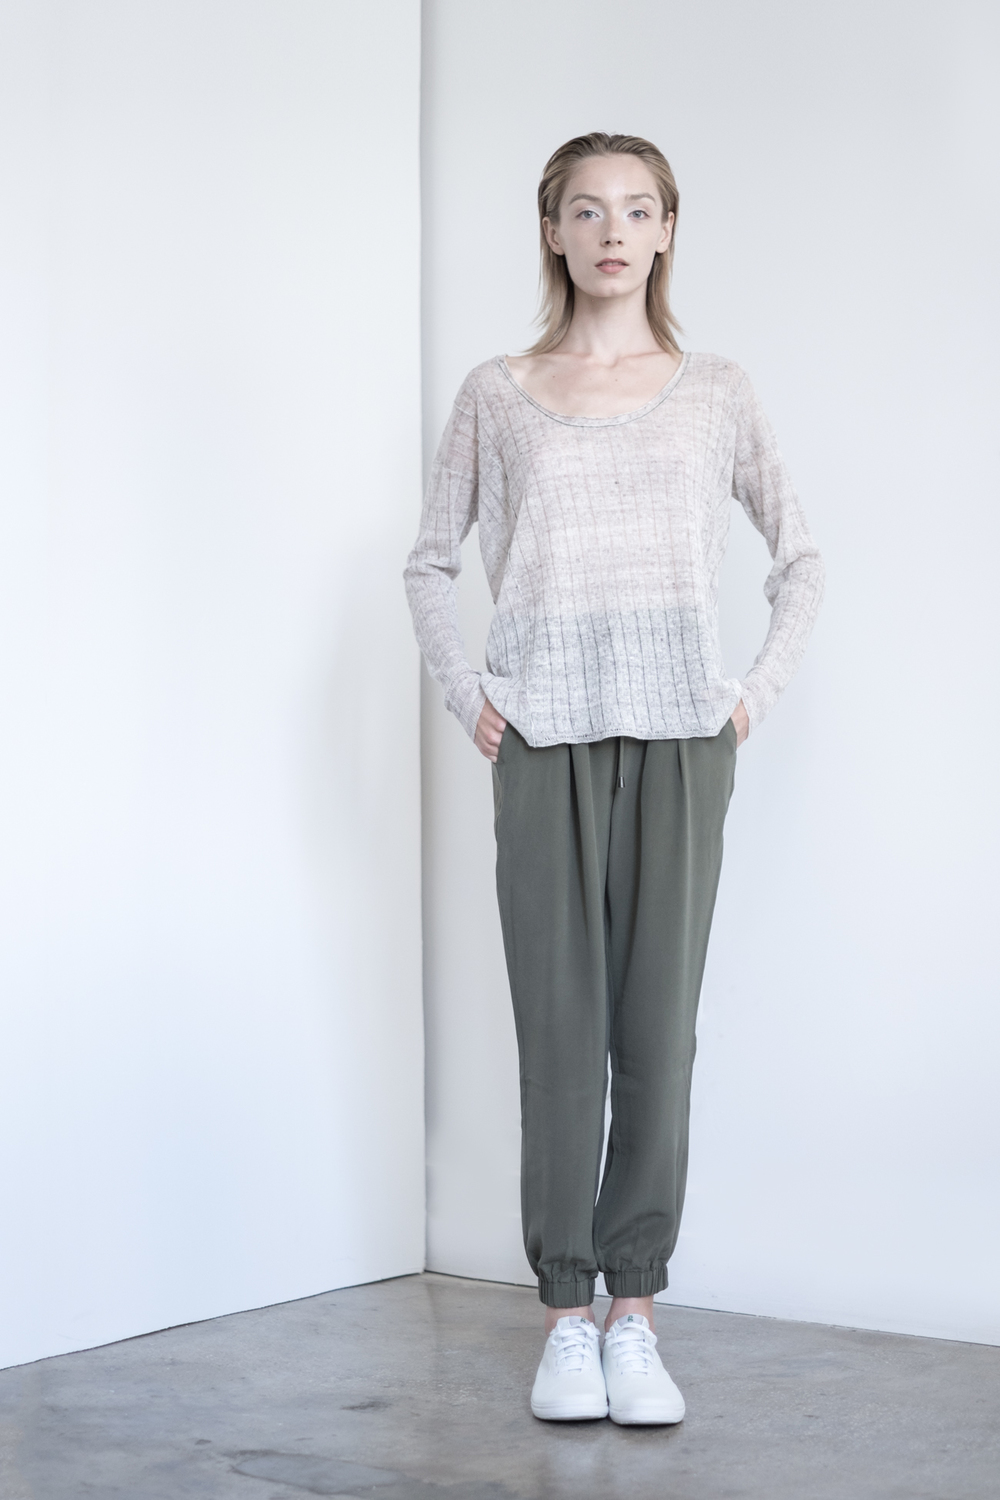 LOOK 32   TOP:   2230  / Sand   -    Scoop neck long sleeve, in fine gauge Italian linen neps. WS:  88   BOTTOM:   2203  / Clover -    Jogger pants in 100% Silk.  WS:  123